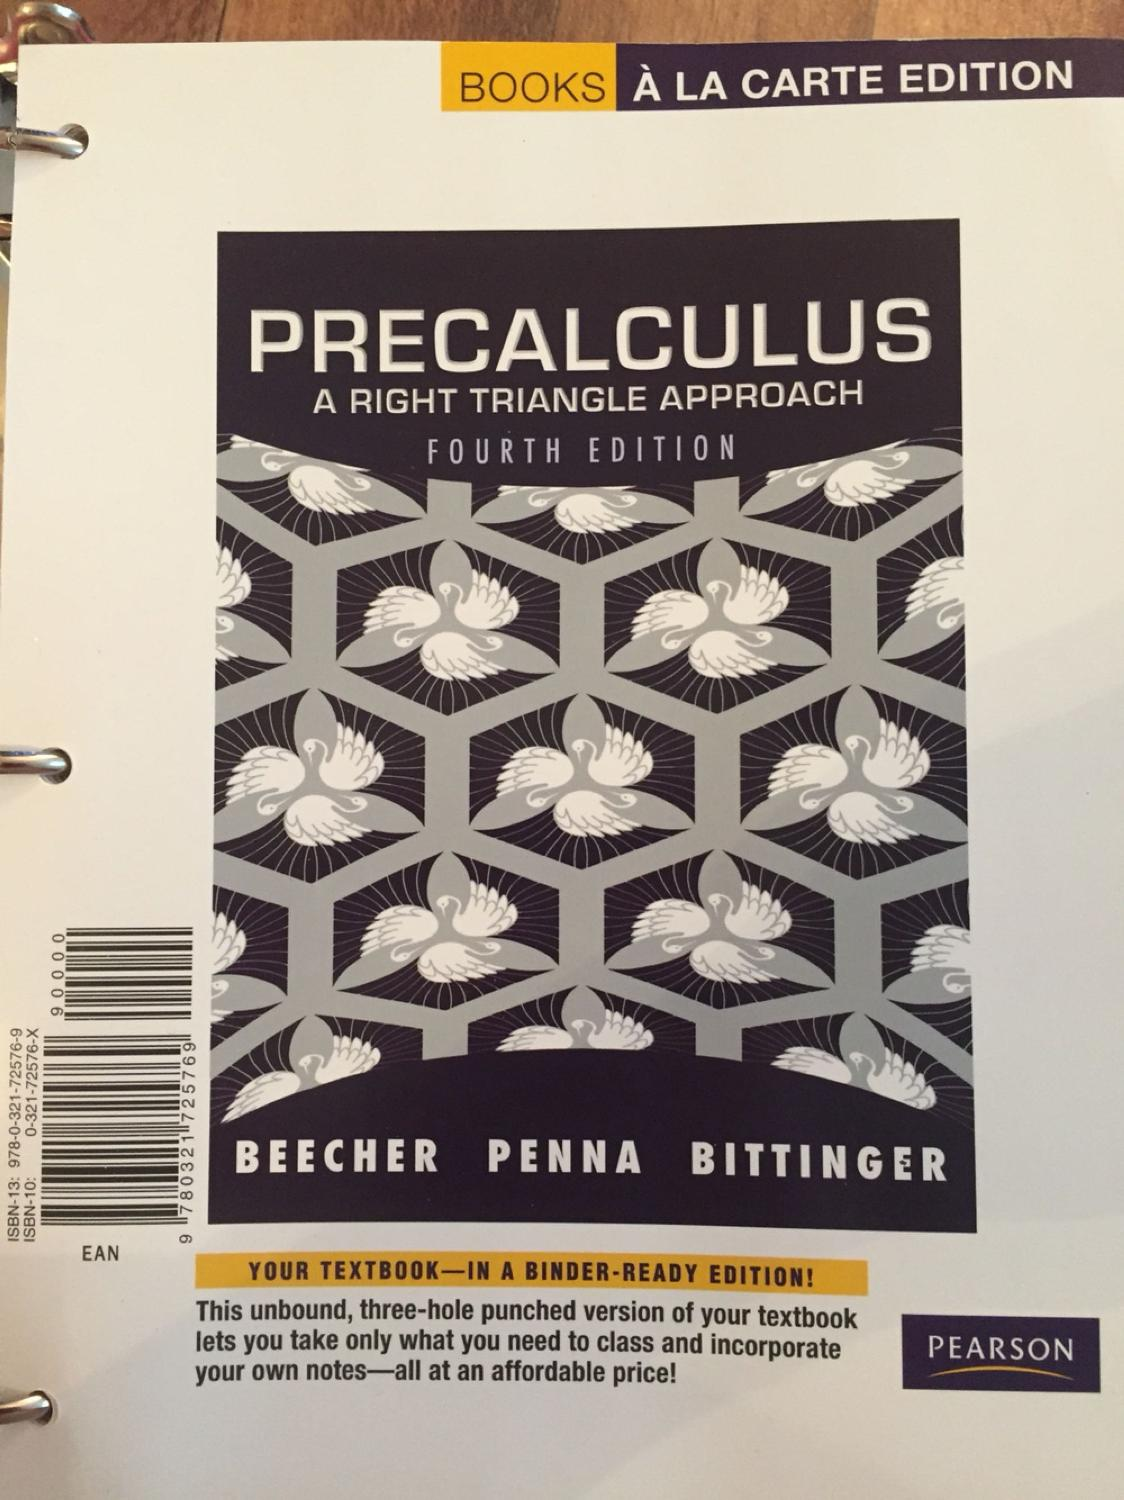 Precalculus textbook for MA 113 at South